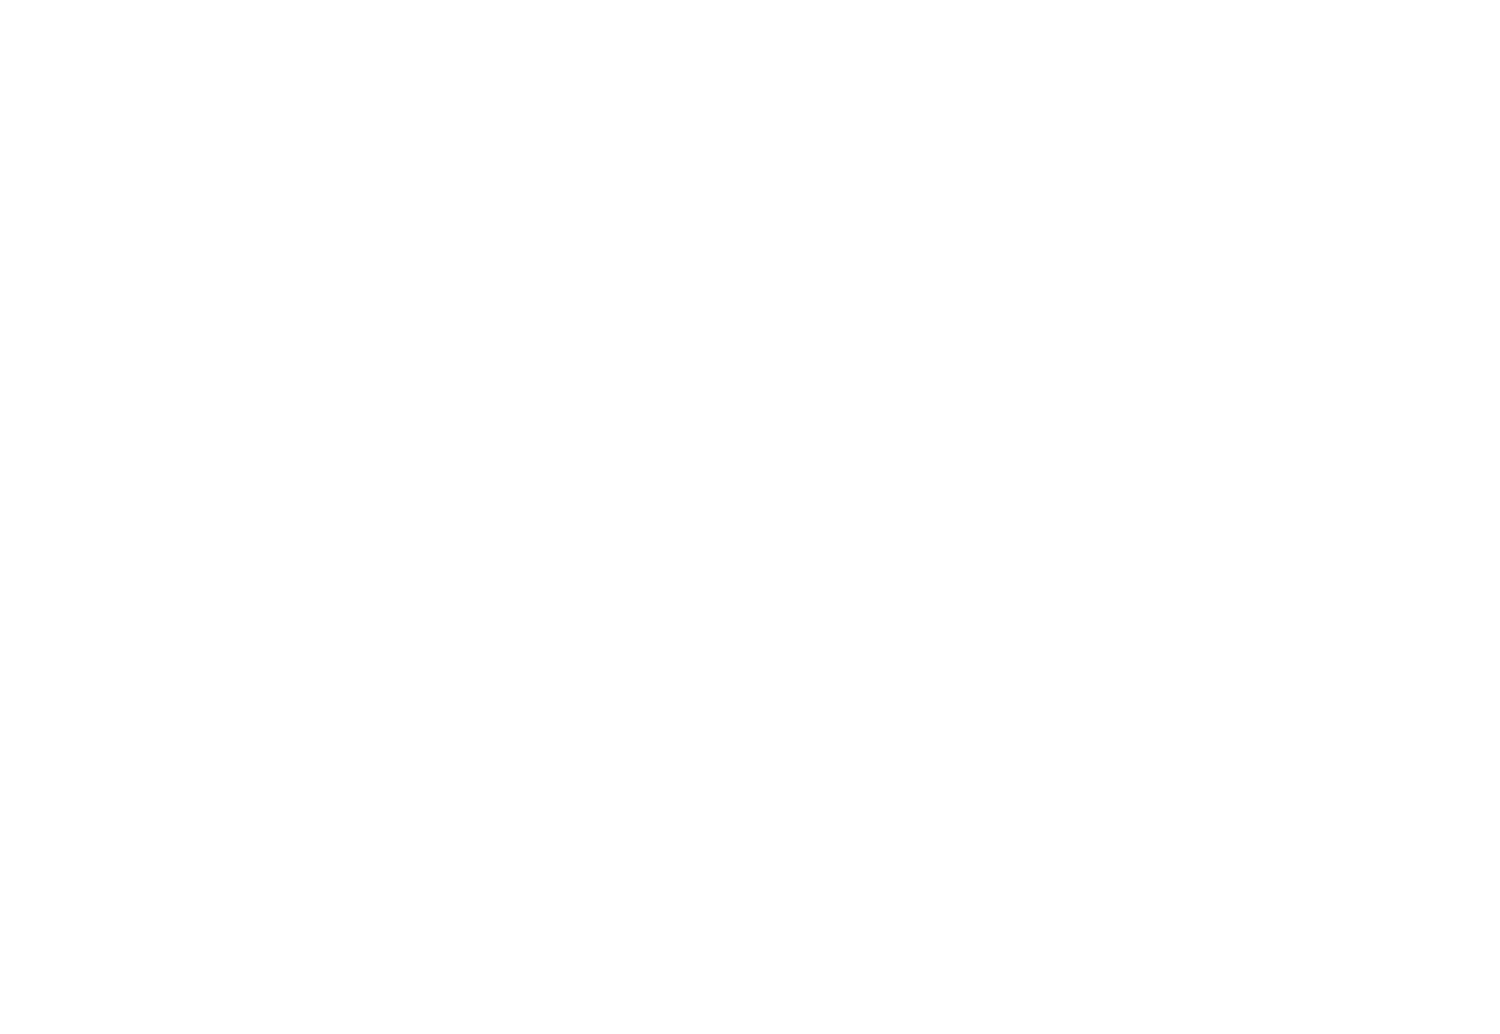 Forestry Training and Tree Care Services